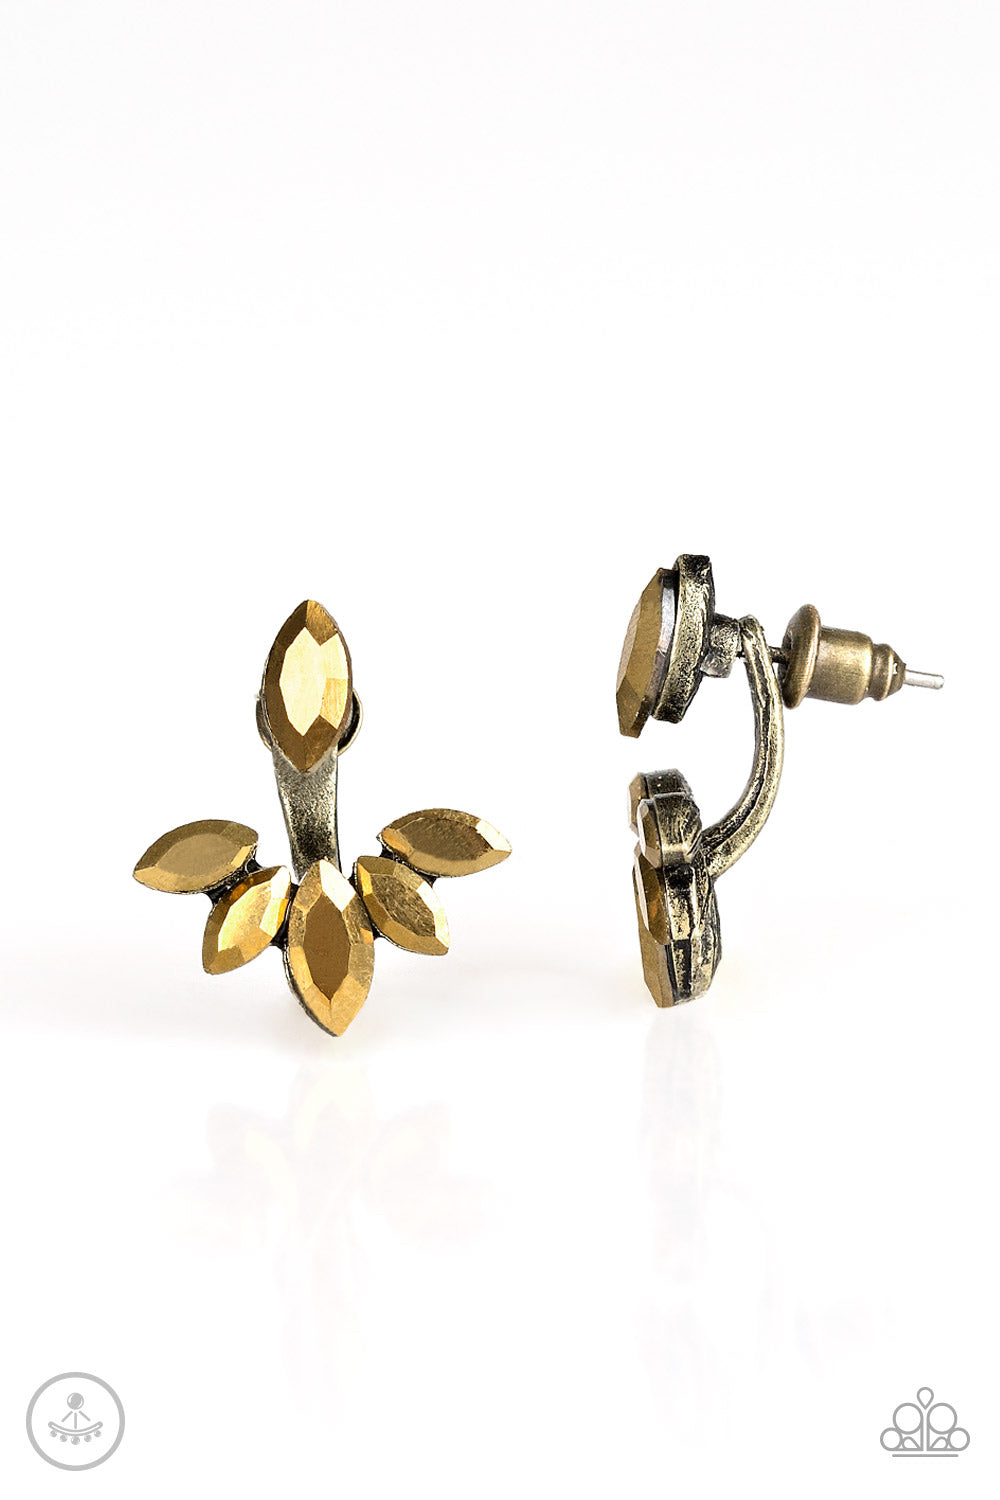 Radical Refinement - Brass Earrings - Paparazzi Accessories - The Bling Peddler